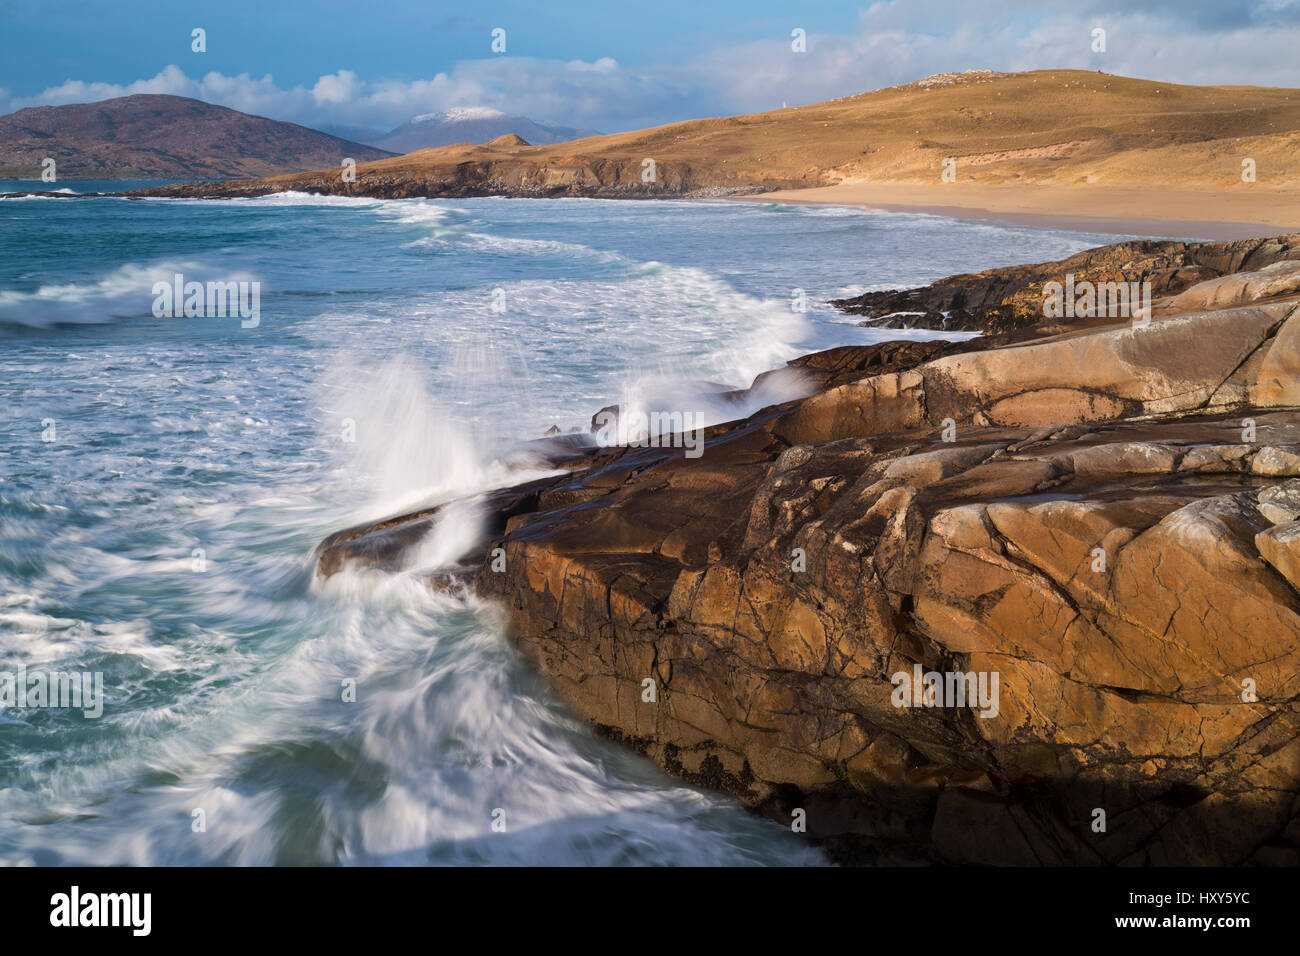 Coast at Horgabost, South Harris, Outer Hebrides - Stock Image